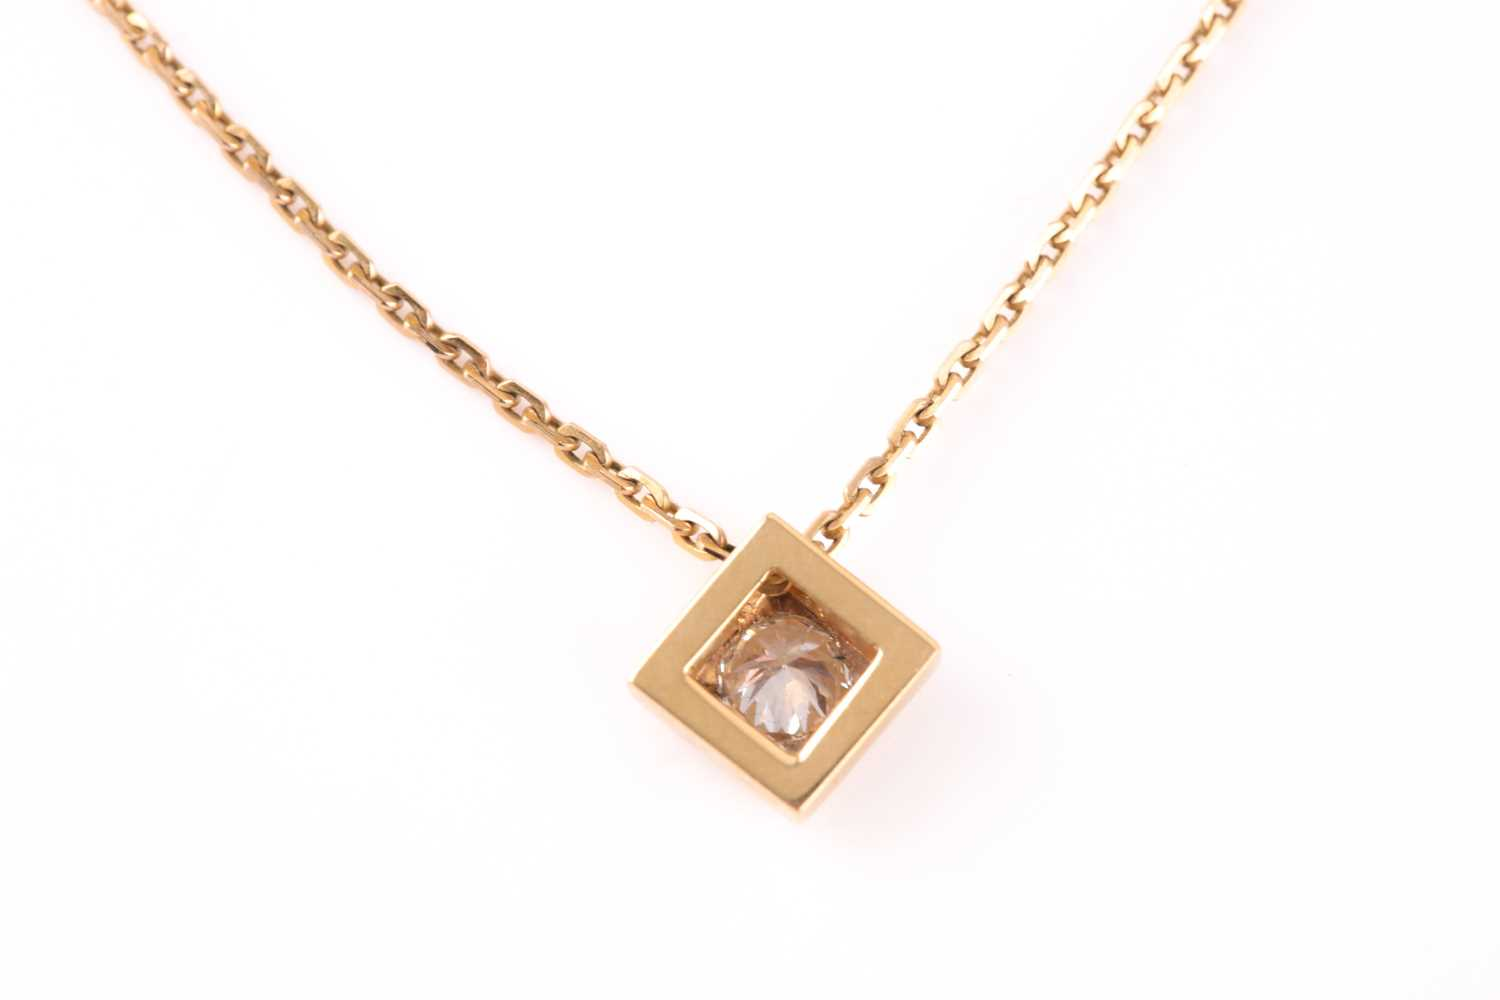 A solitaire diamond pendant, set with a round brilliant-cut diamond of approximately 0.33 carats, - Image 3 of 3